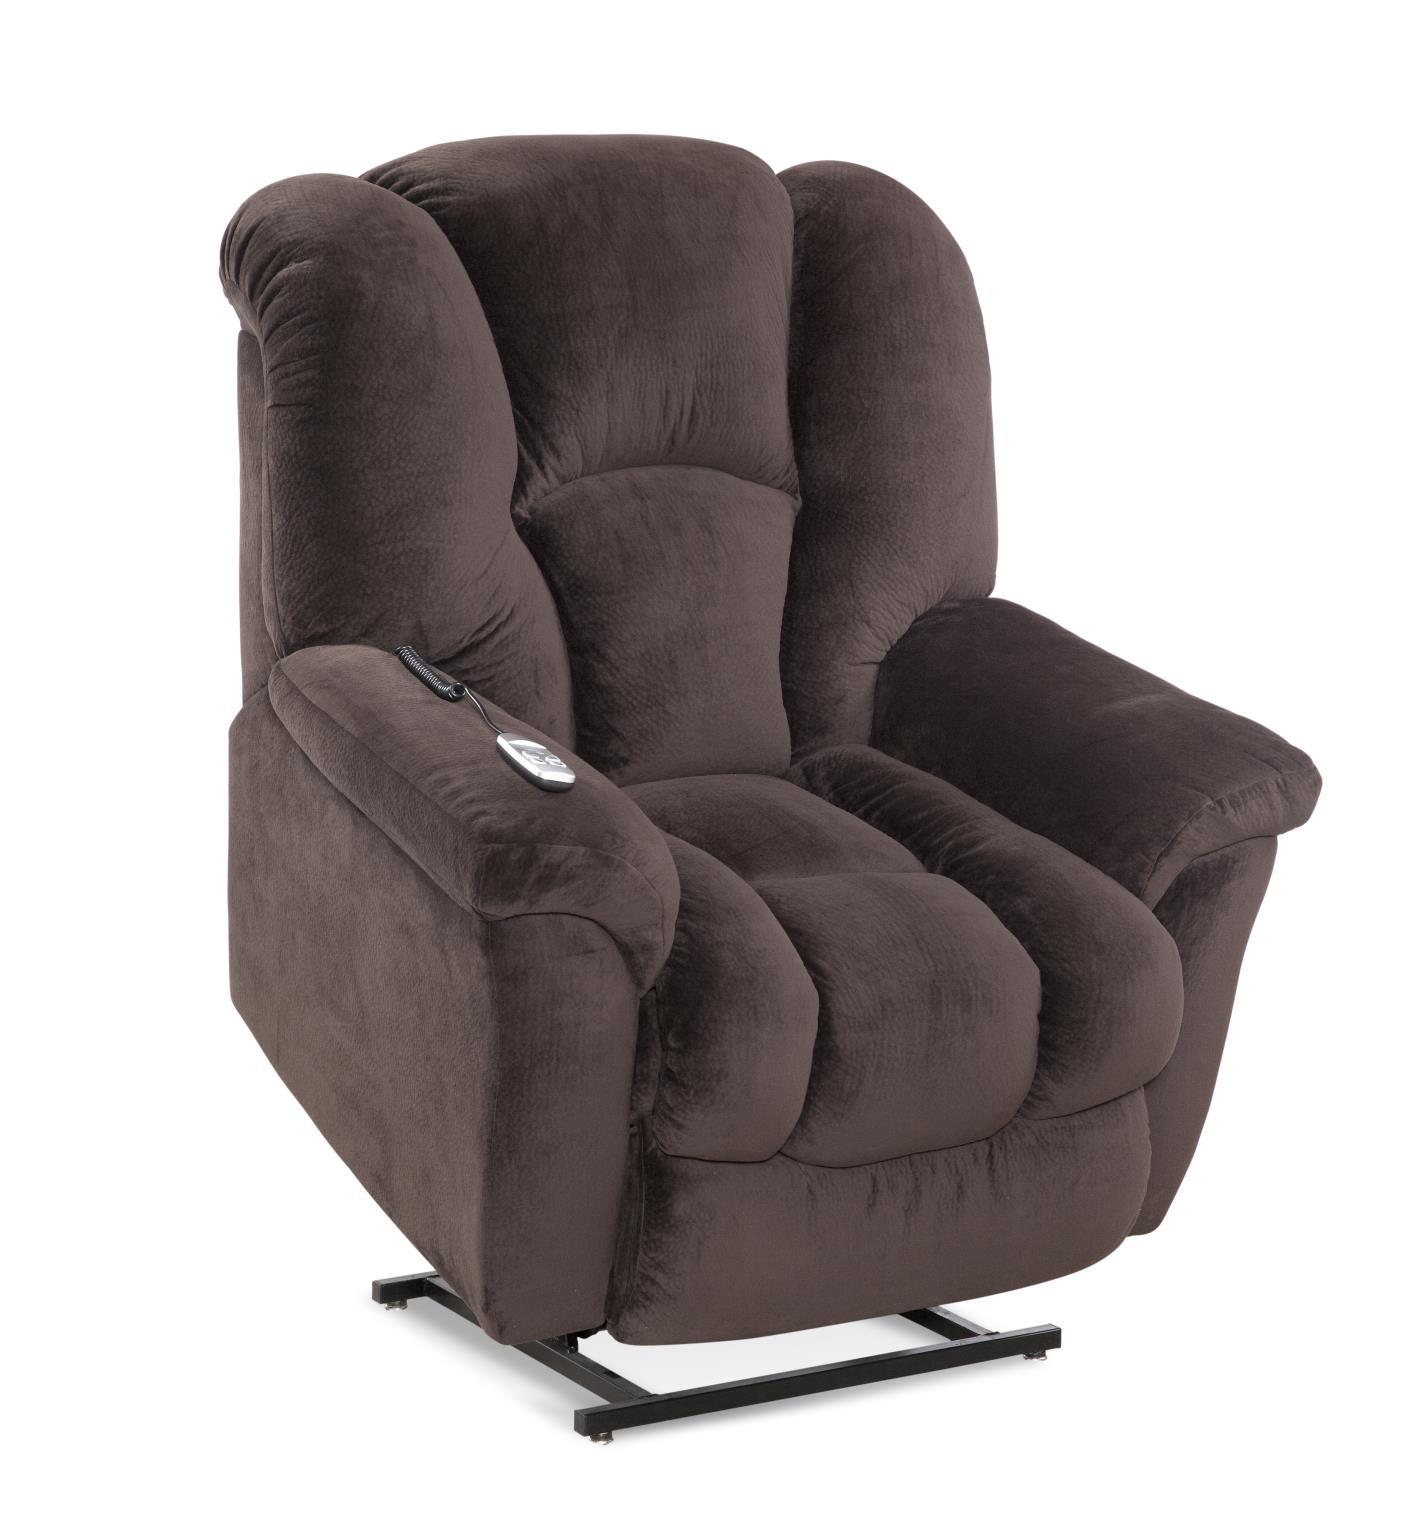 HomeStretch Lift Chairs Transformer Espresso Lift Chair Great